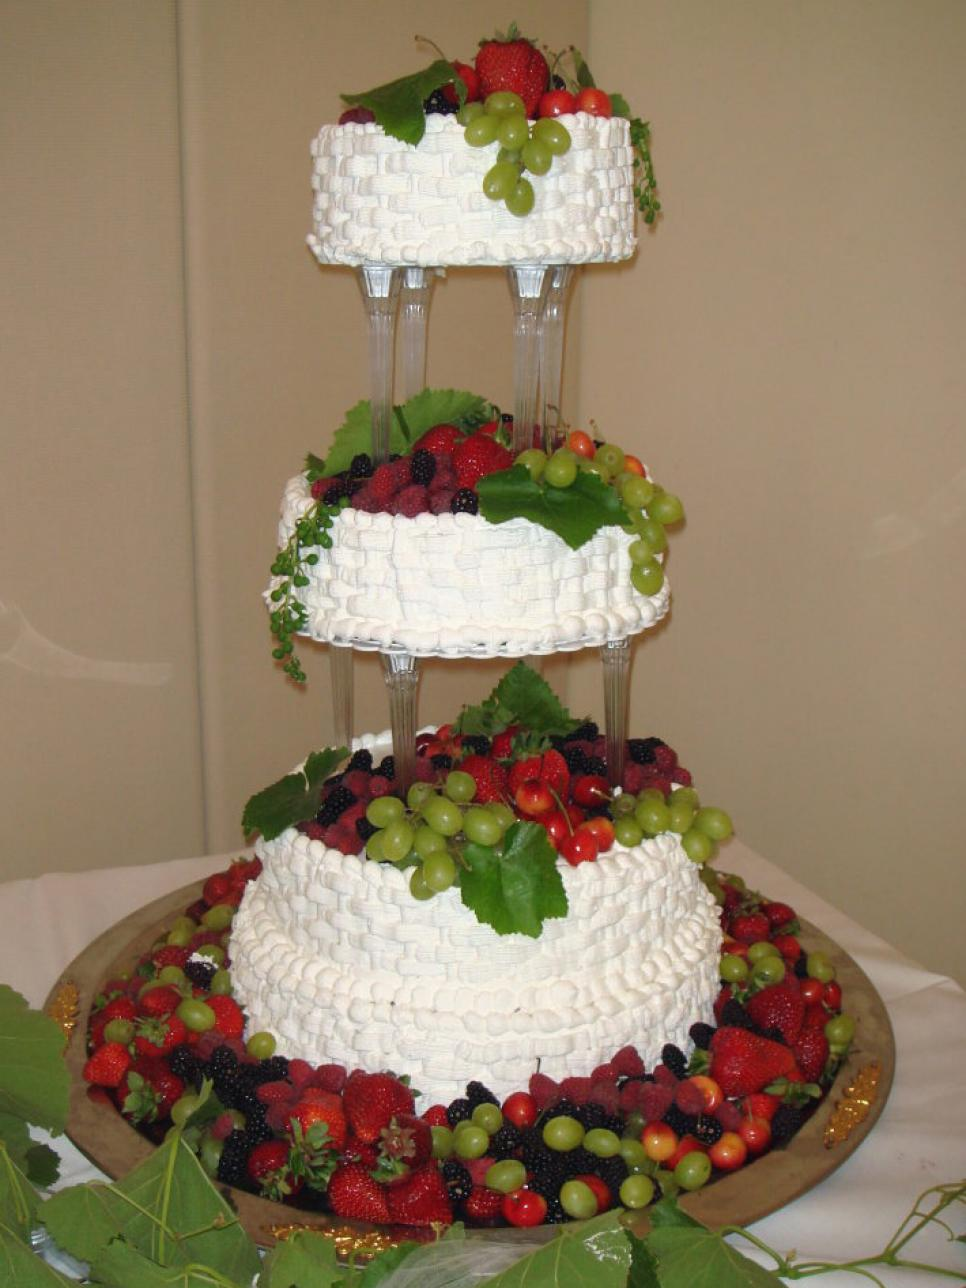 Creative Wedding Cakes  Food Network Recipes  Easy